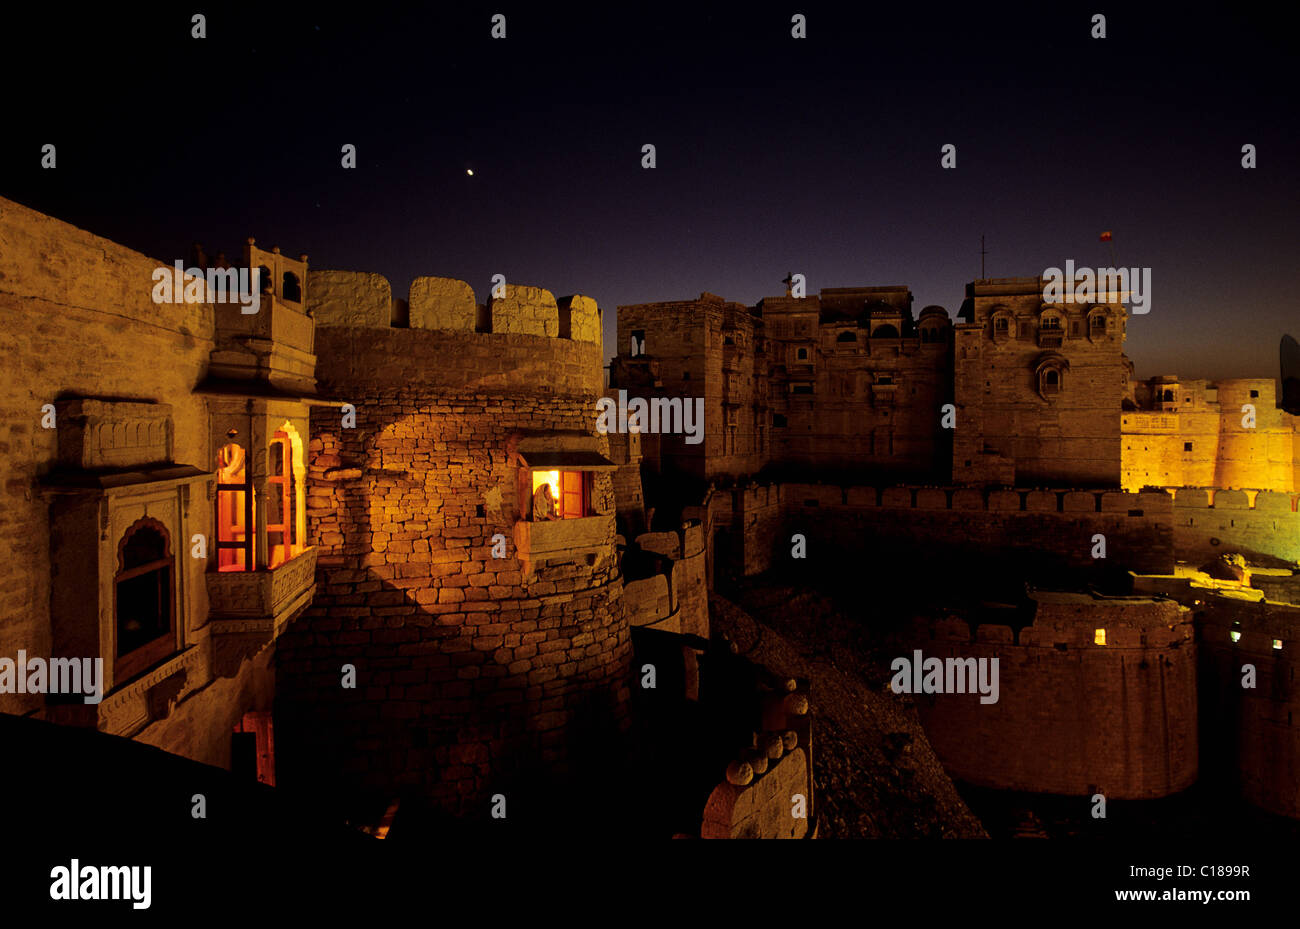 India Rajasthan State Jaisalmer fort the Raj Mahal Palace & the lighted window of the small French owned hotel - Stock Image